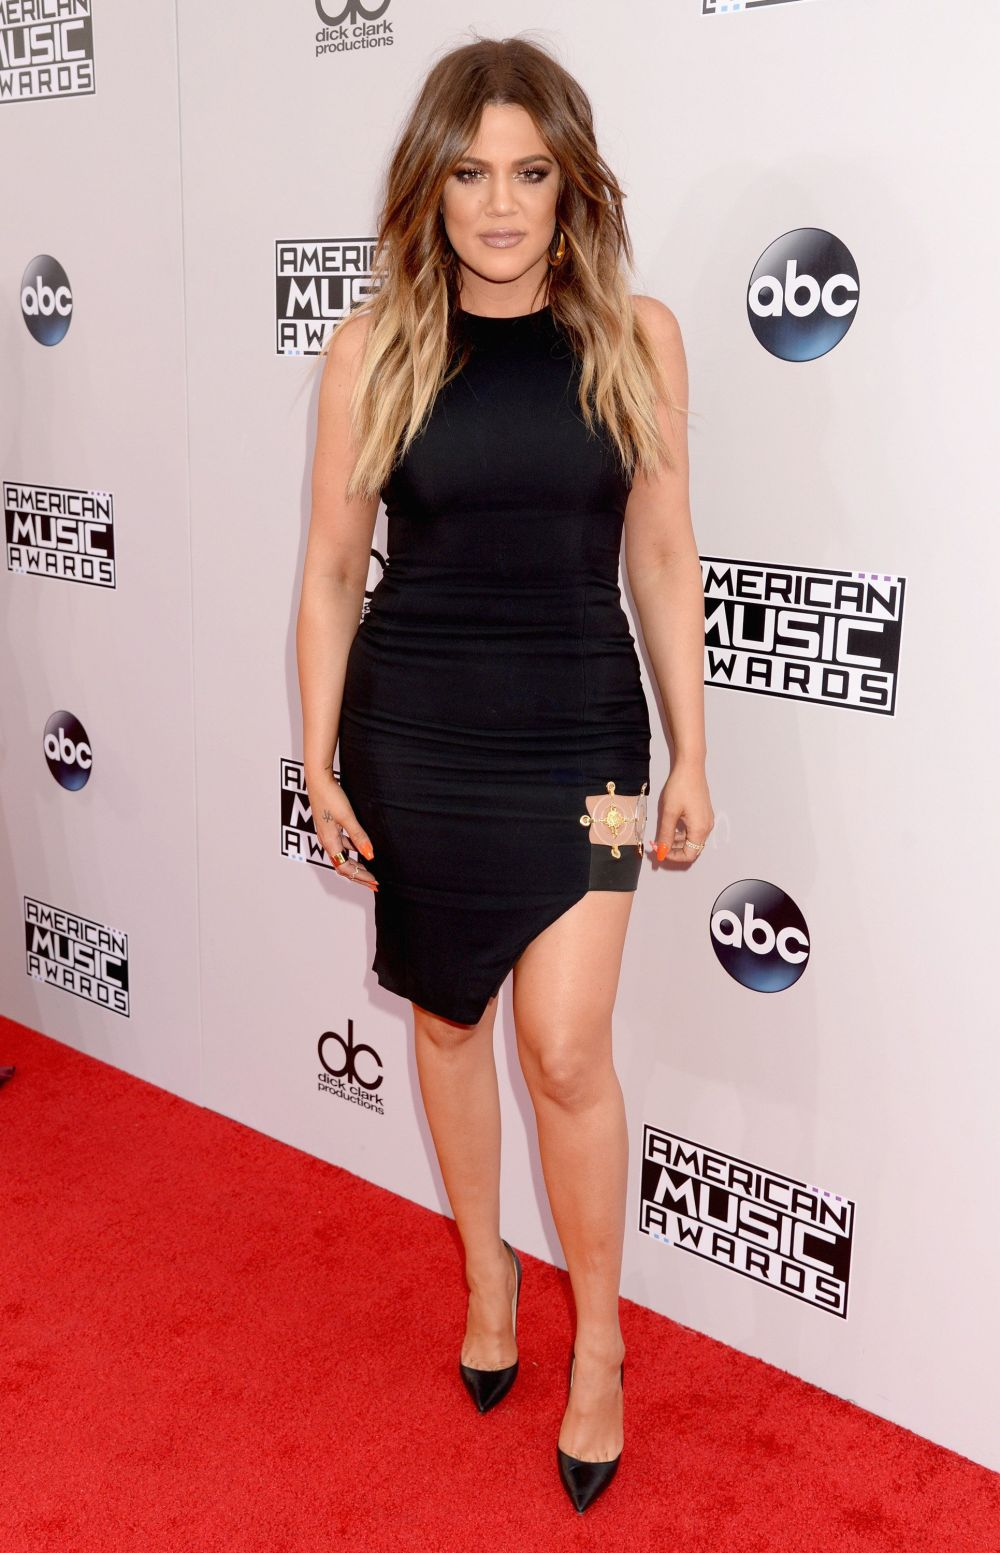 Atthe 2014 American Music Awards at Nokia Theatre L.A. Live in Los Angeles.